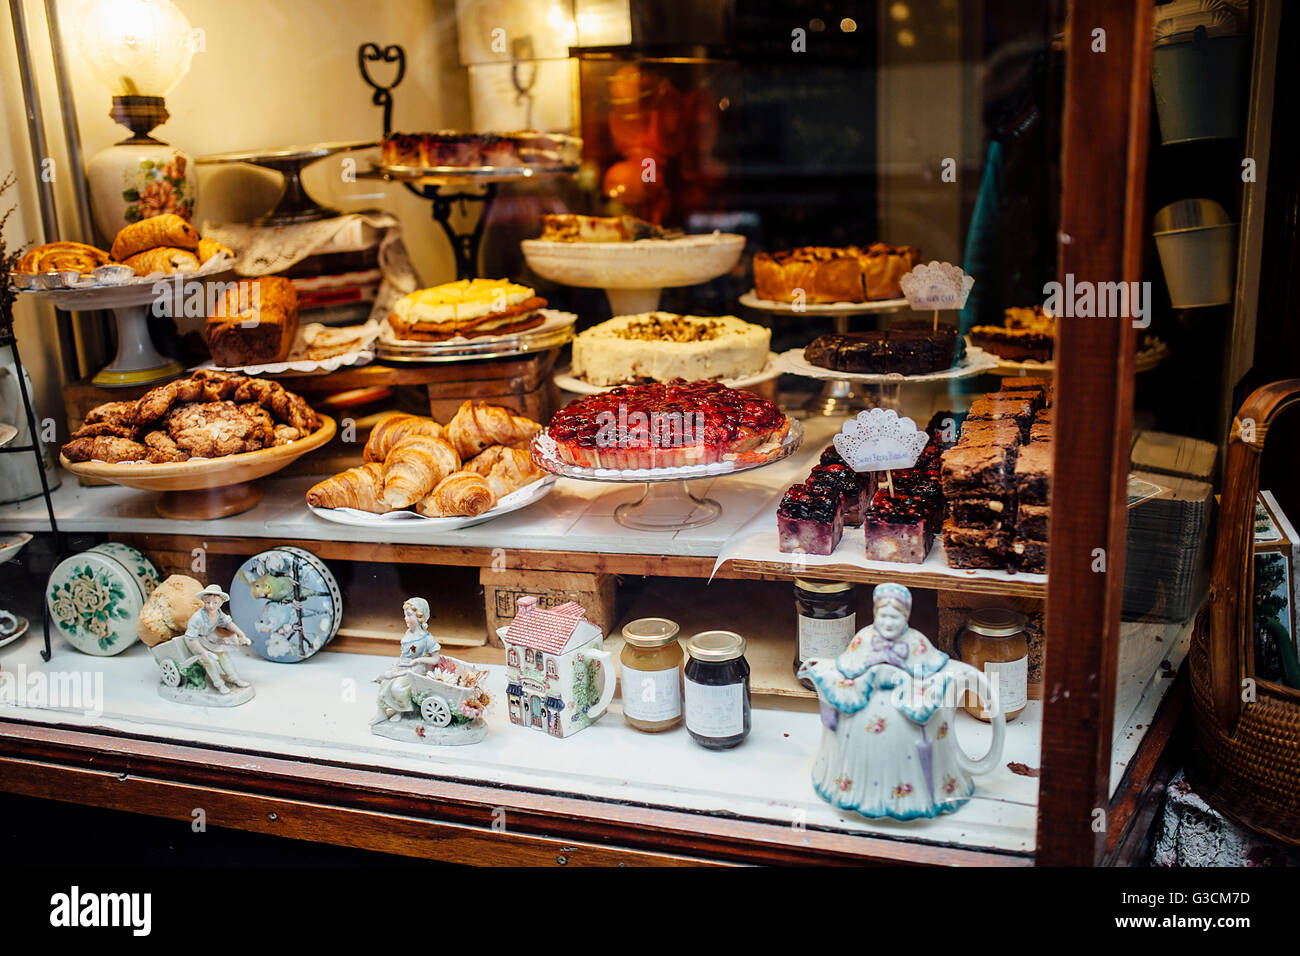 Cakes and pastries in an Amsterdam Showcase, - Stock Image